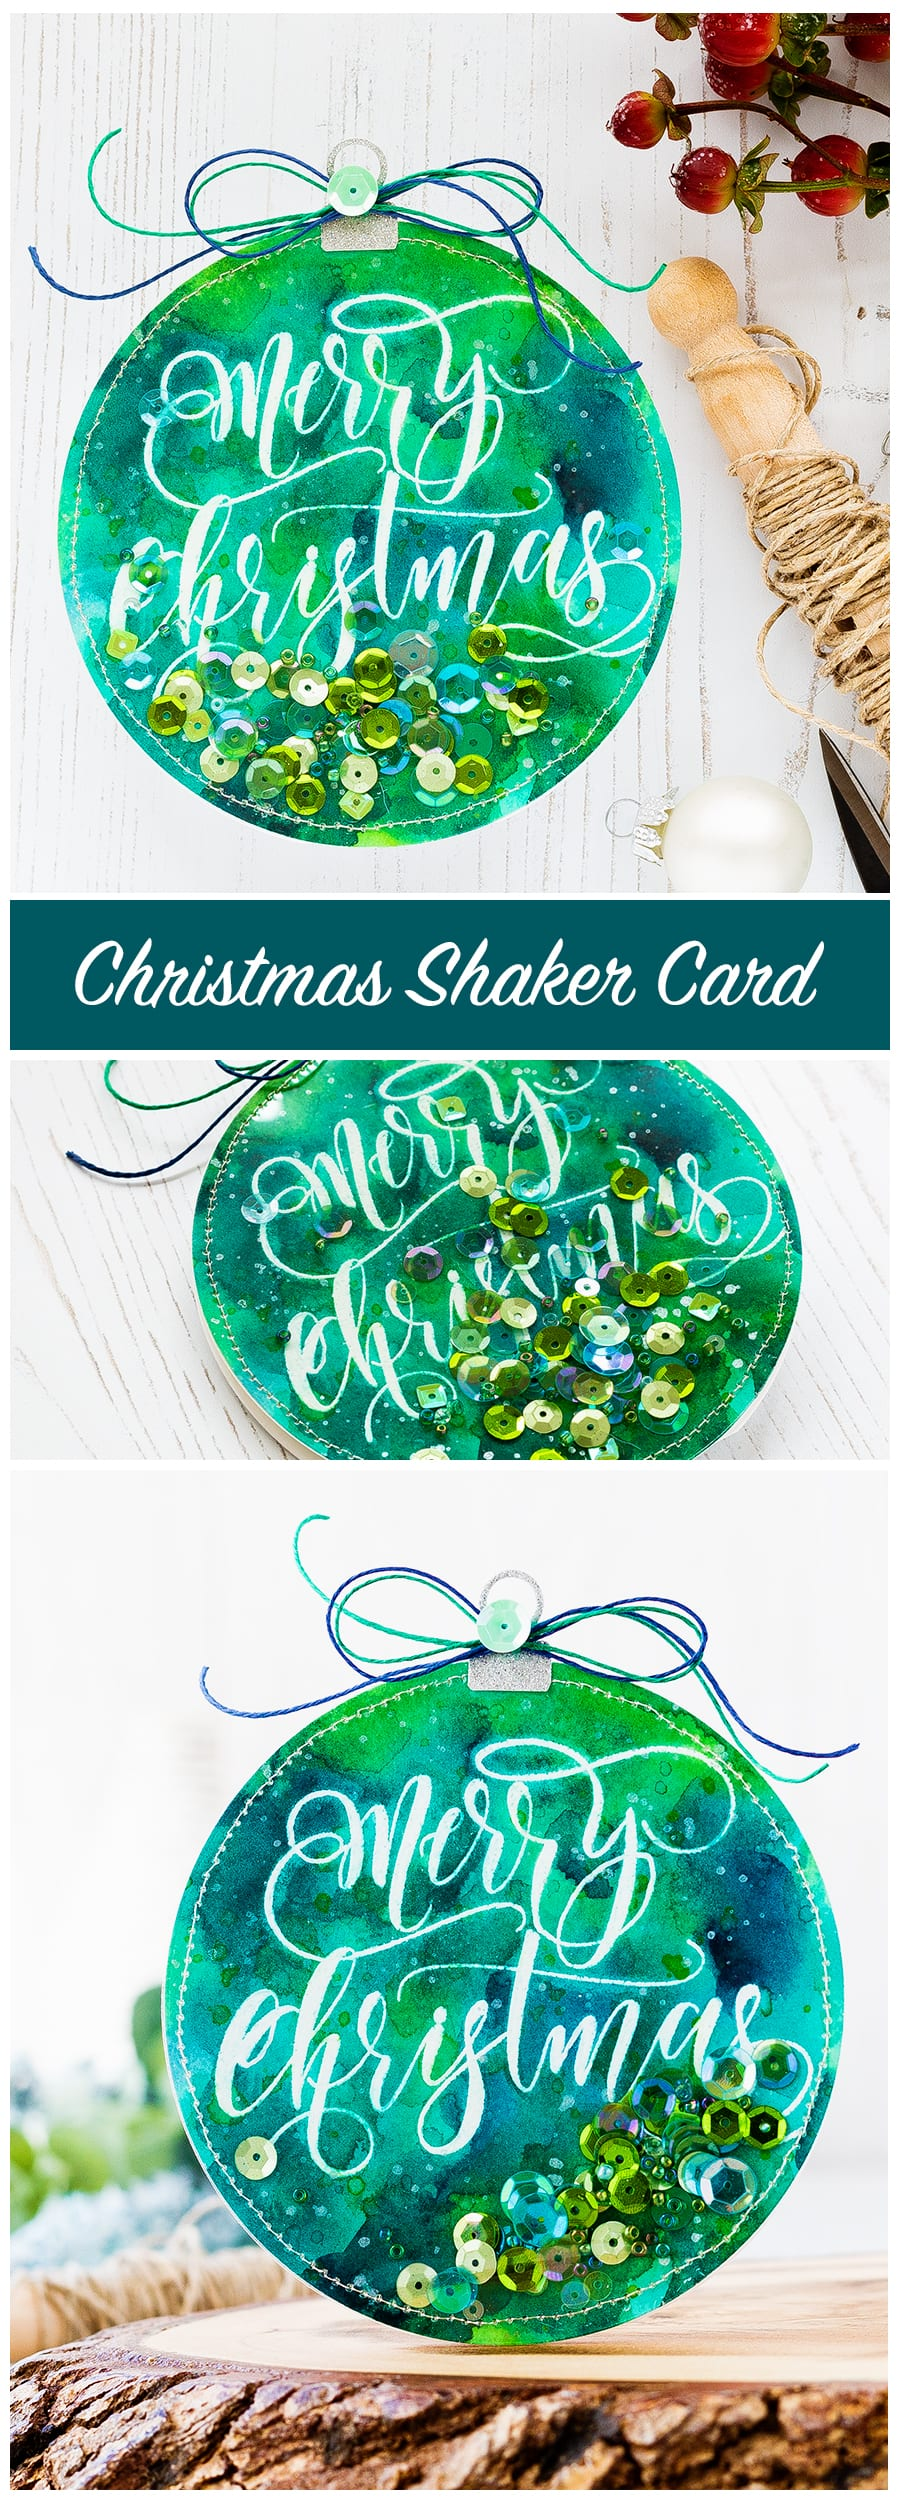 Watercolored Shaker Ornament by Debby Hughes. Find out more about this Christmas card by clicking on the following link: https://limedoodledesign.com/2016/12/watercolored-shaker-ornament/